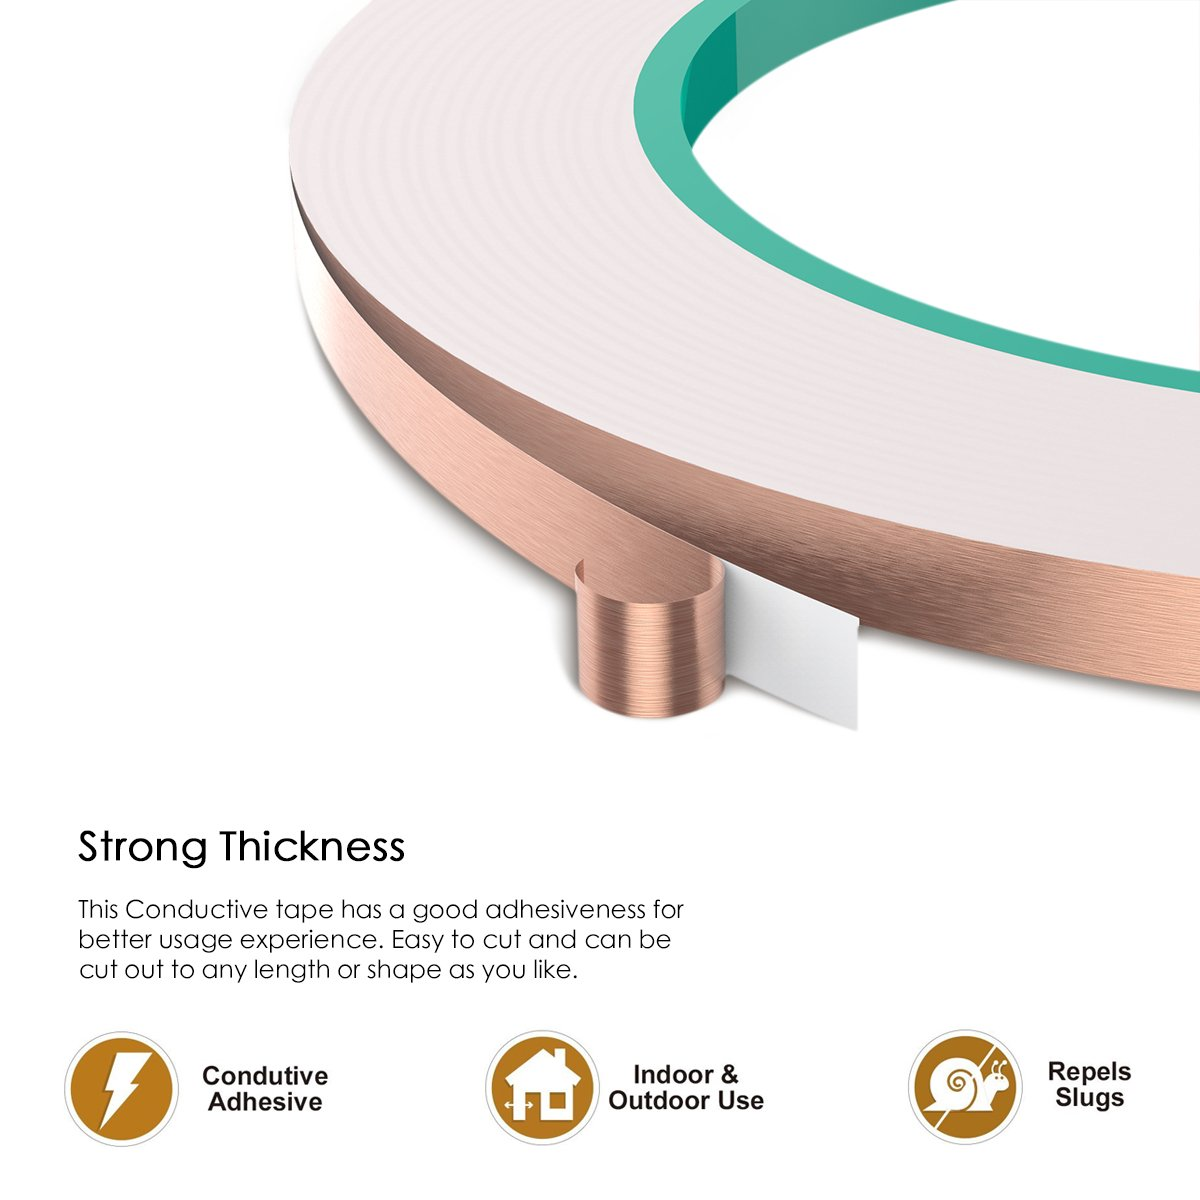 YoungRich 4 Pack Copper Foil Tape Conductive Adhesive for Electrical Repairs EMI Shielding Paper Circuits Craft Projects Pest Repelling Slug Snail 5mm25m by YoungRich (Image #2)